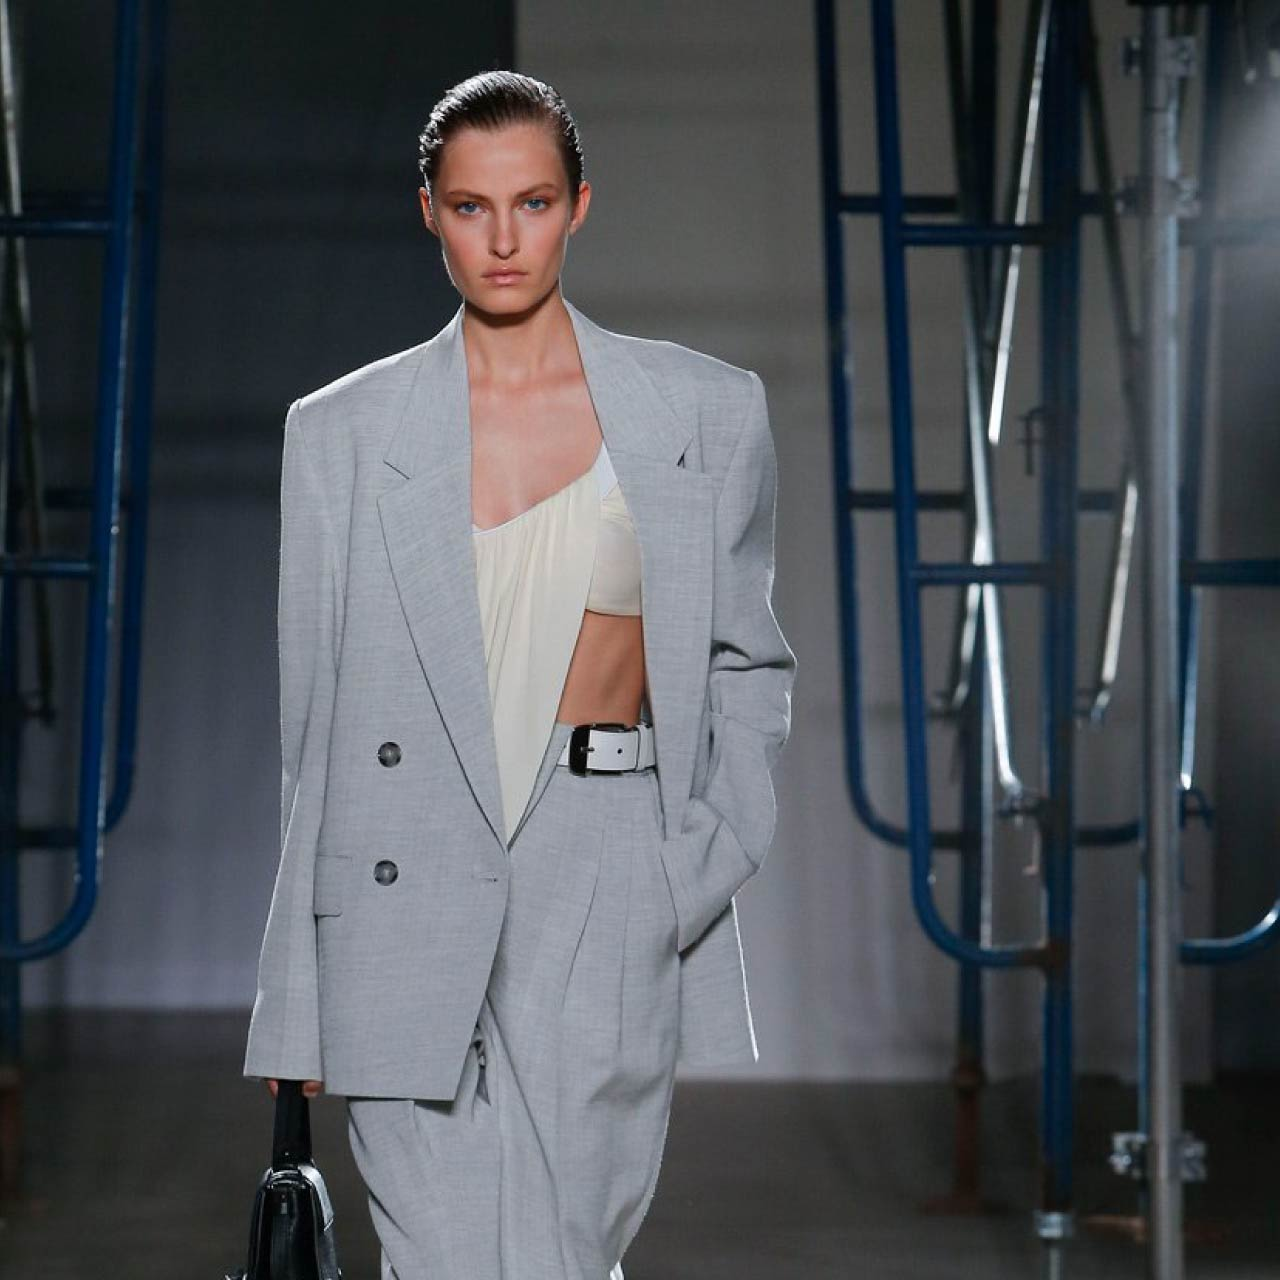 Tailored Jacket Hems - Straight or Curved? | The Cutting Class. Proenza Schouler, SS20. Double breasted jacket in grey.